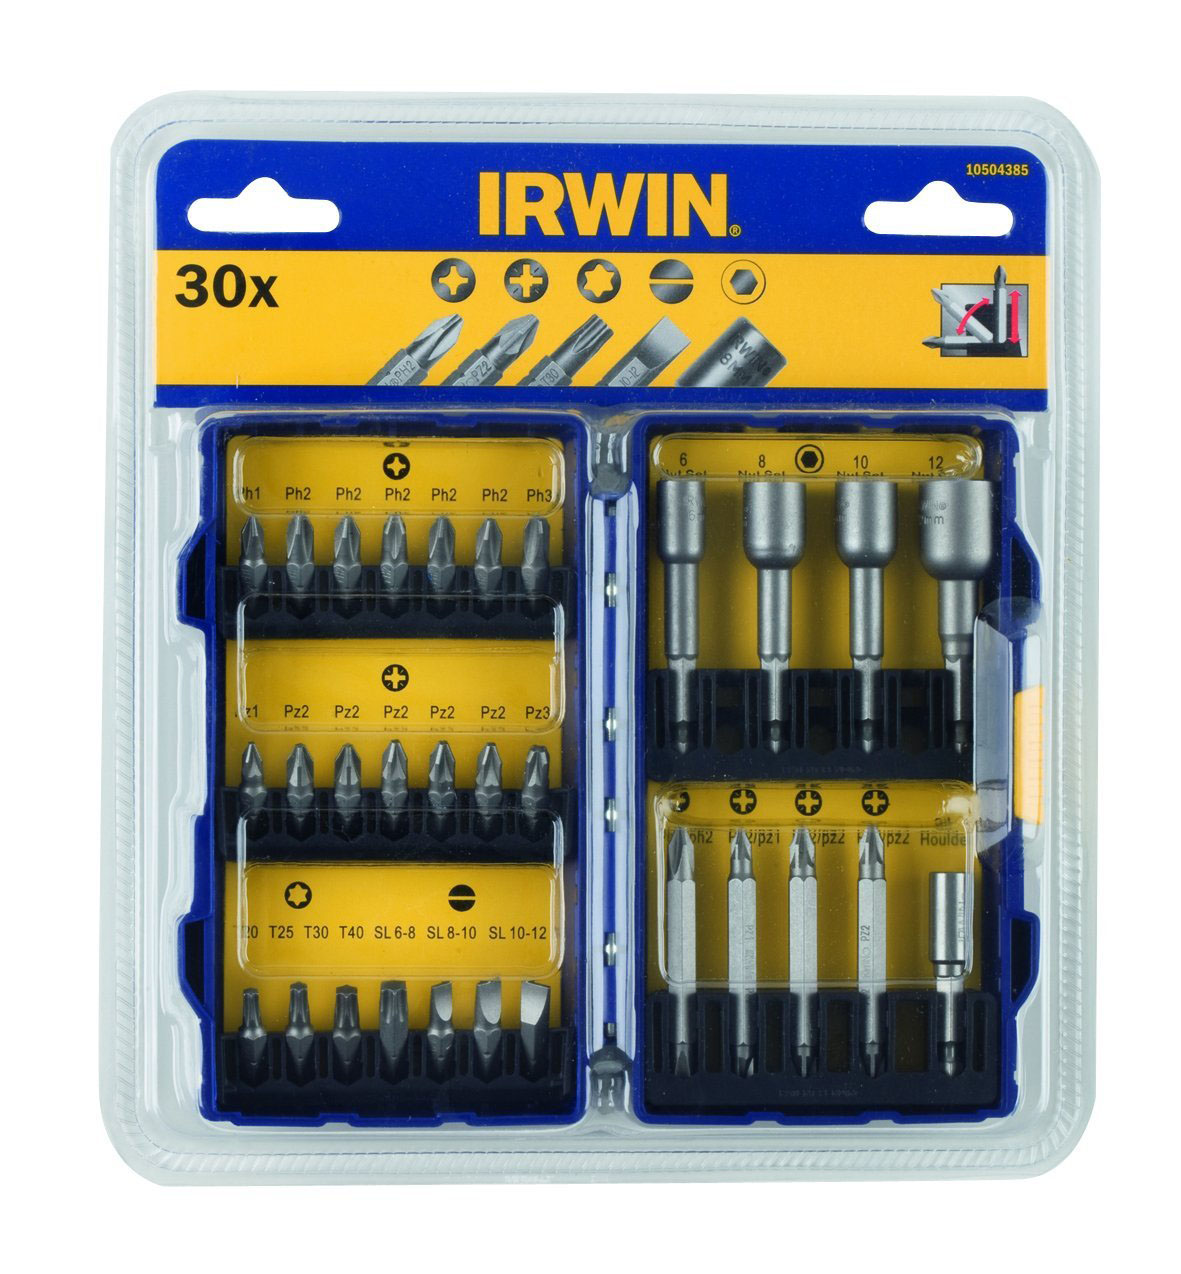 IRWIN 10504385 - Pro-Screwdriver Bit Set 30 Pieces